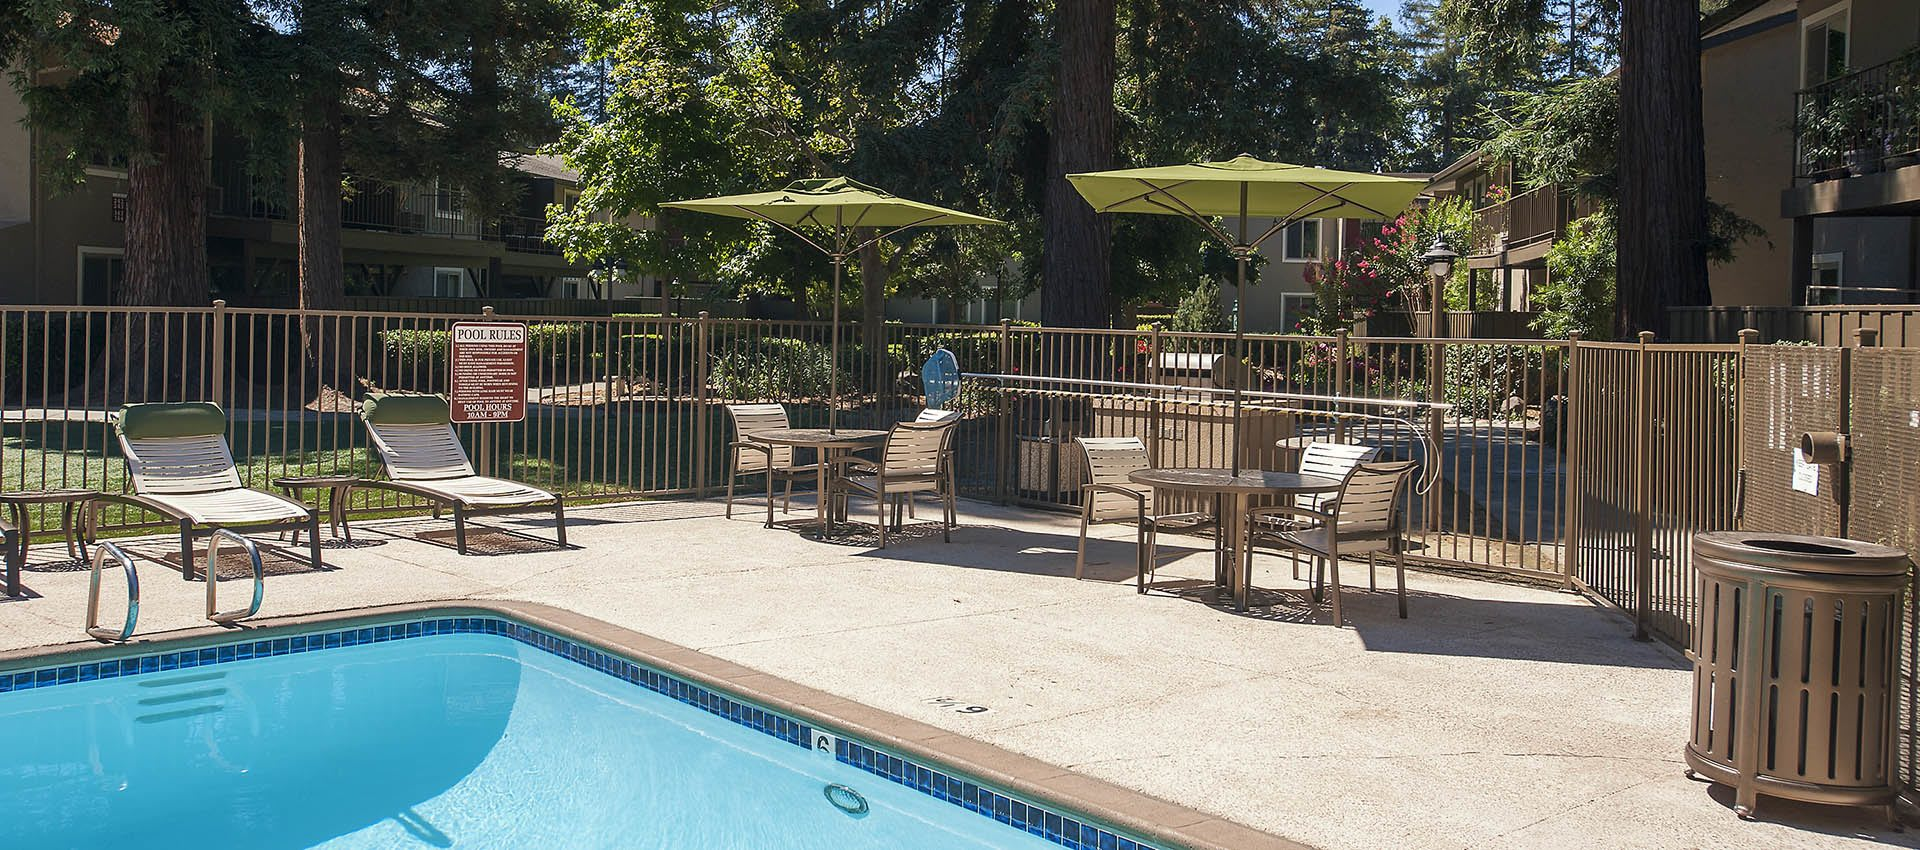 Swimming Pool With Bbq Area at Flora Condominium Rentals in Walnut Creek, California